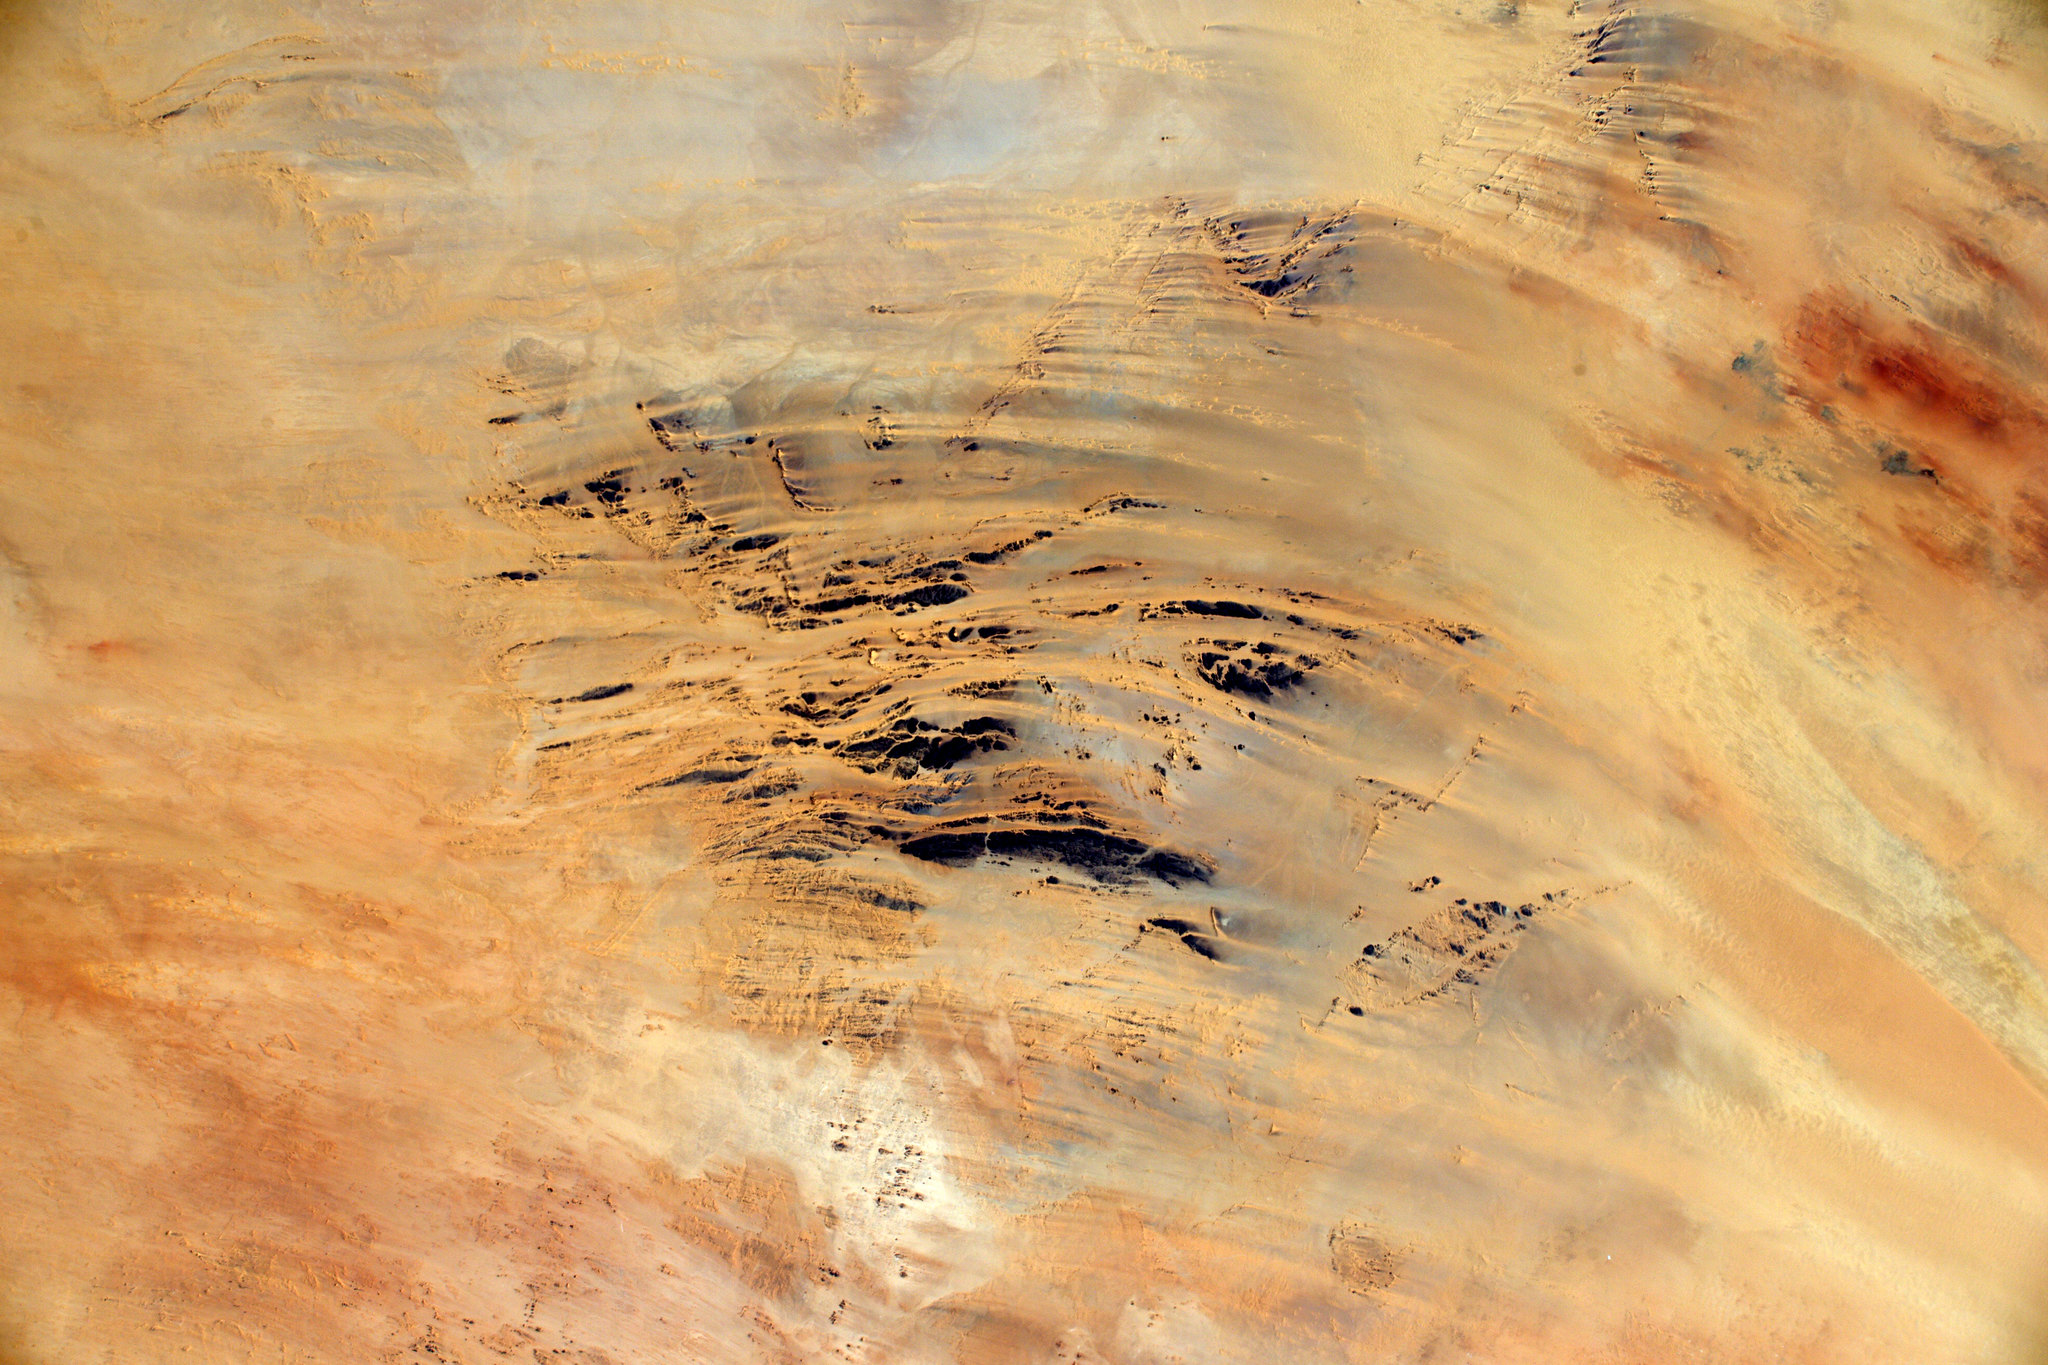 French Astronaut Thomas Pesquet - Desert Art